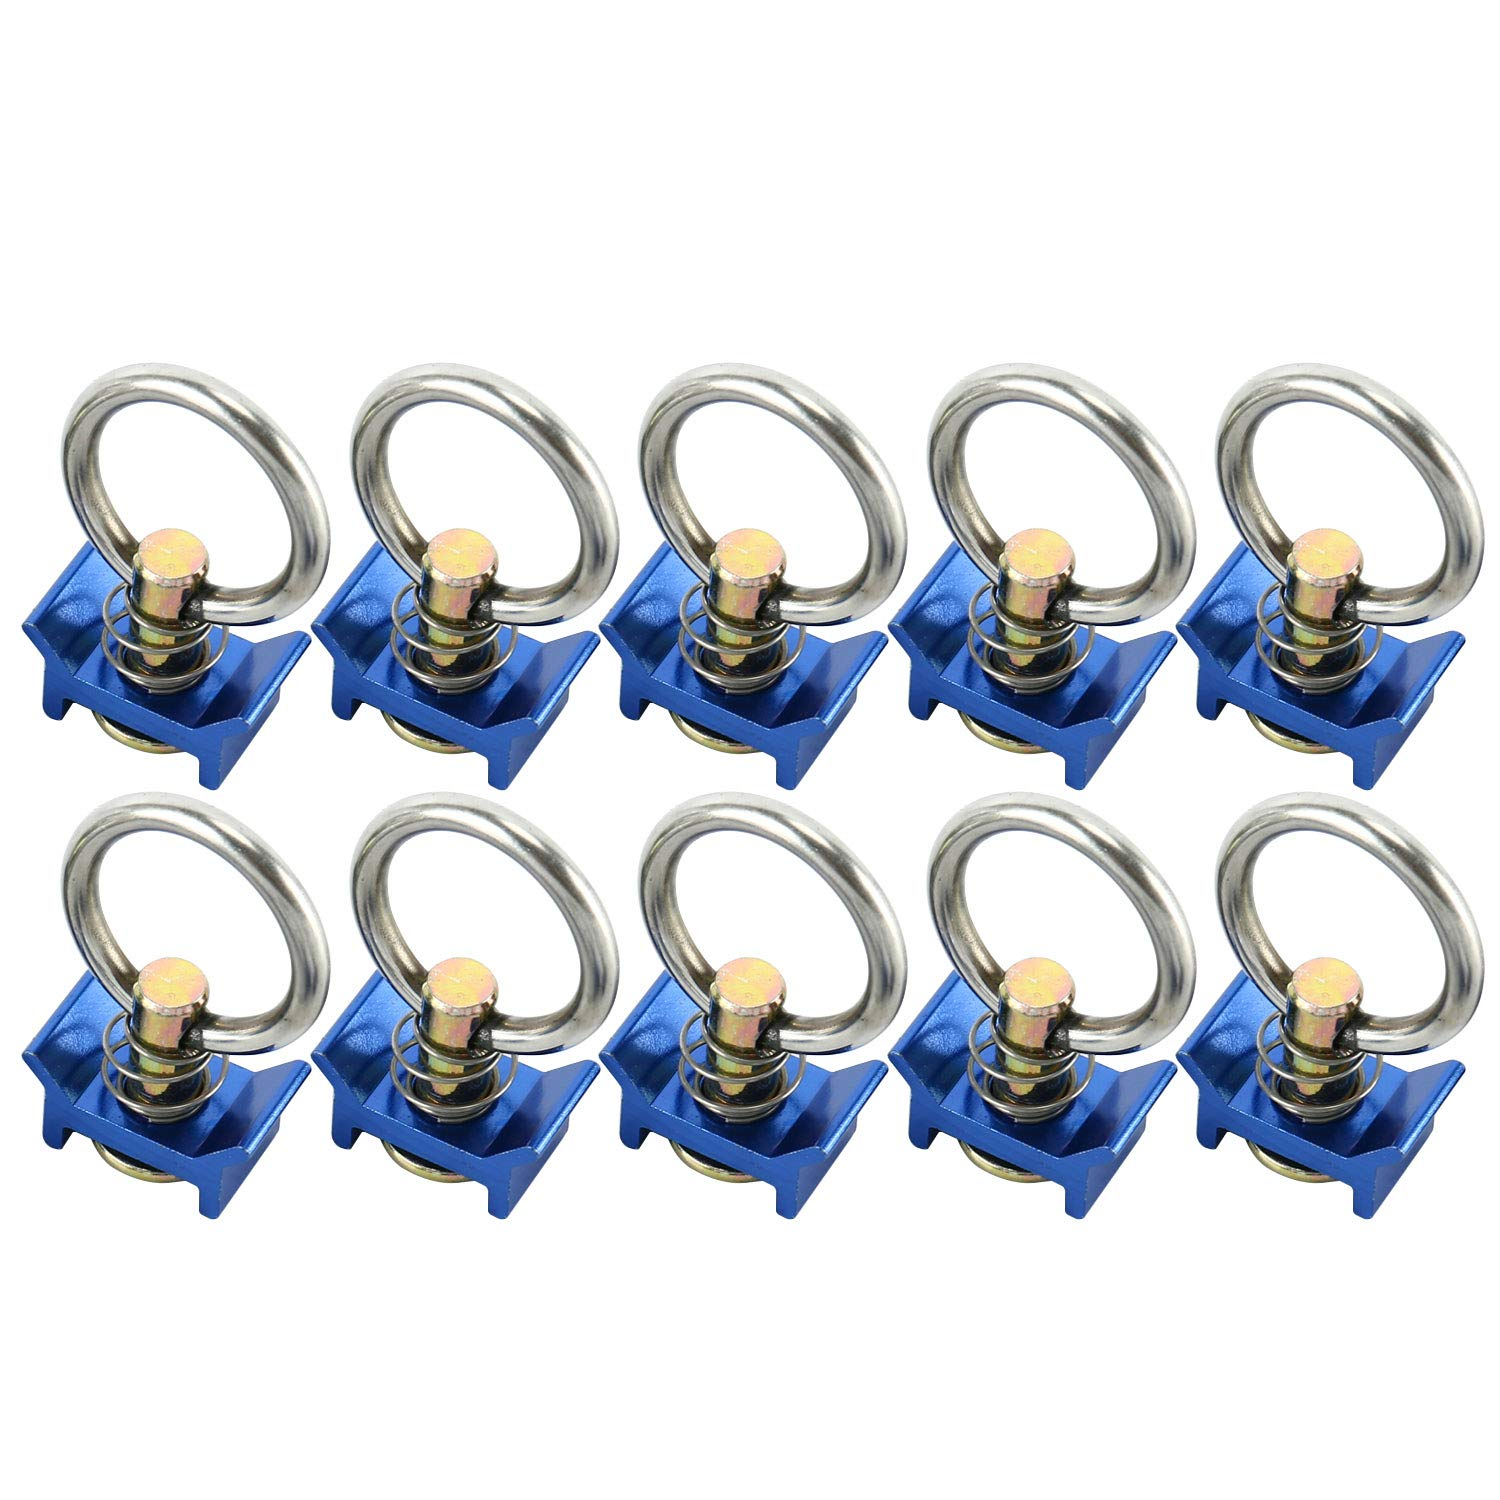 8MILELAKE Single Stud L-Track Fitting with Round Ring 10 Pack